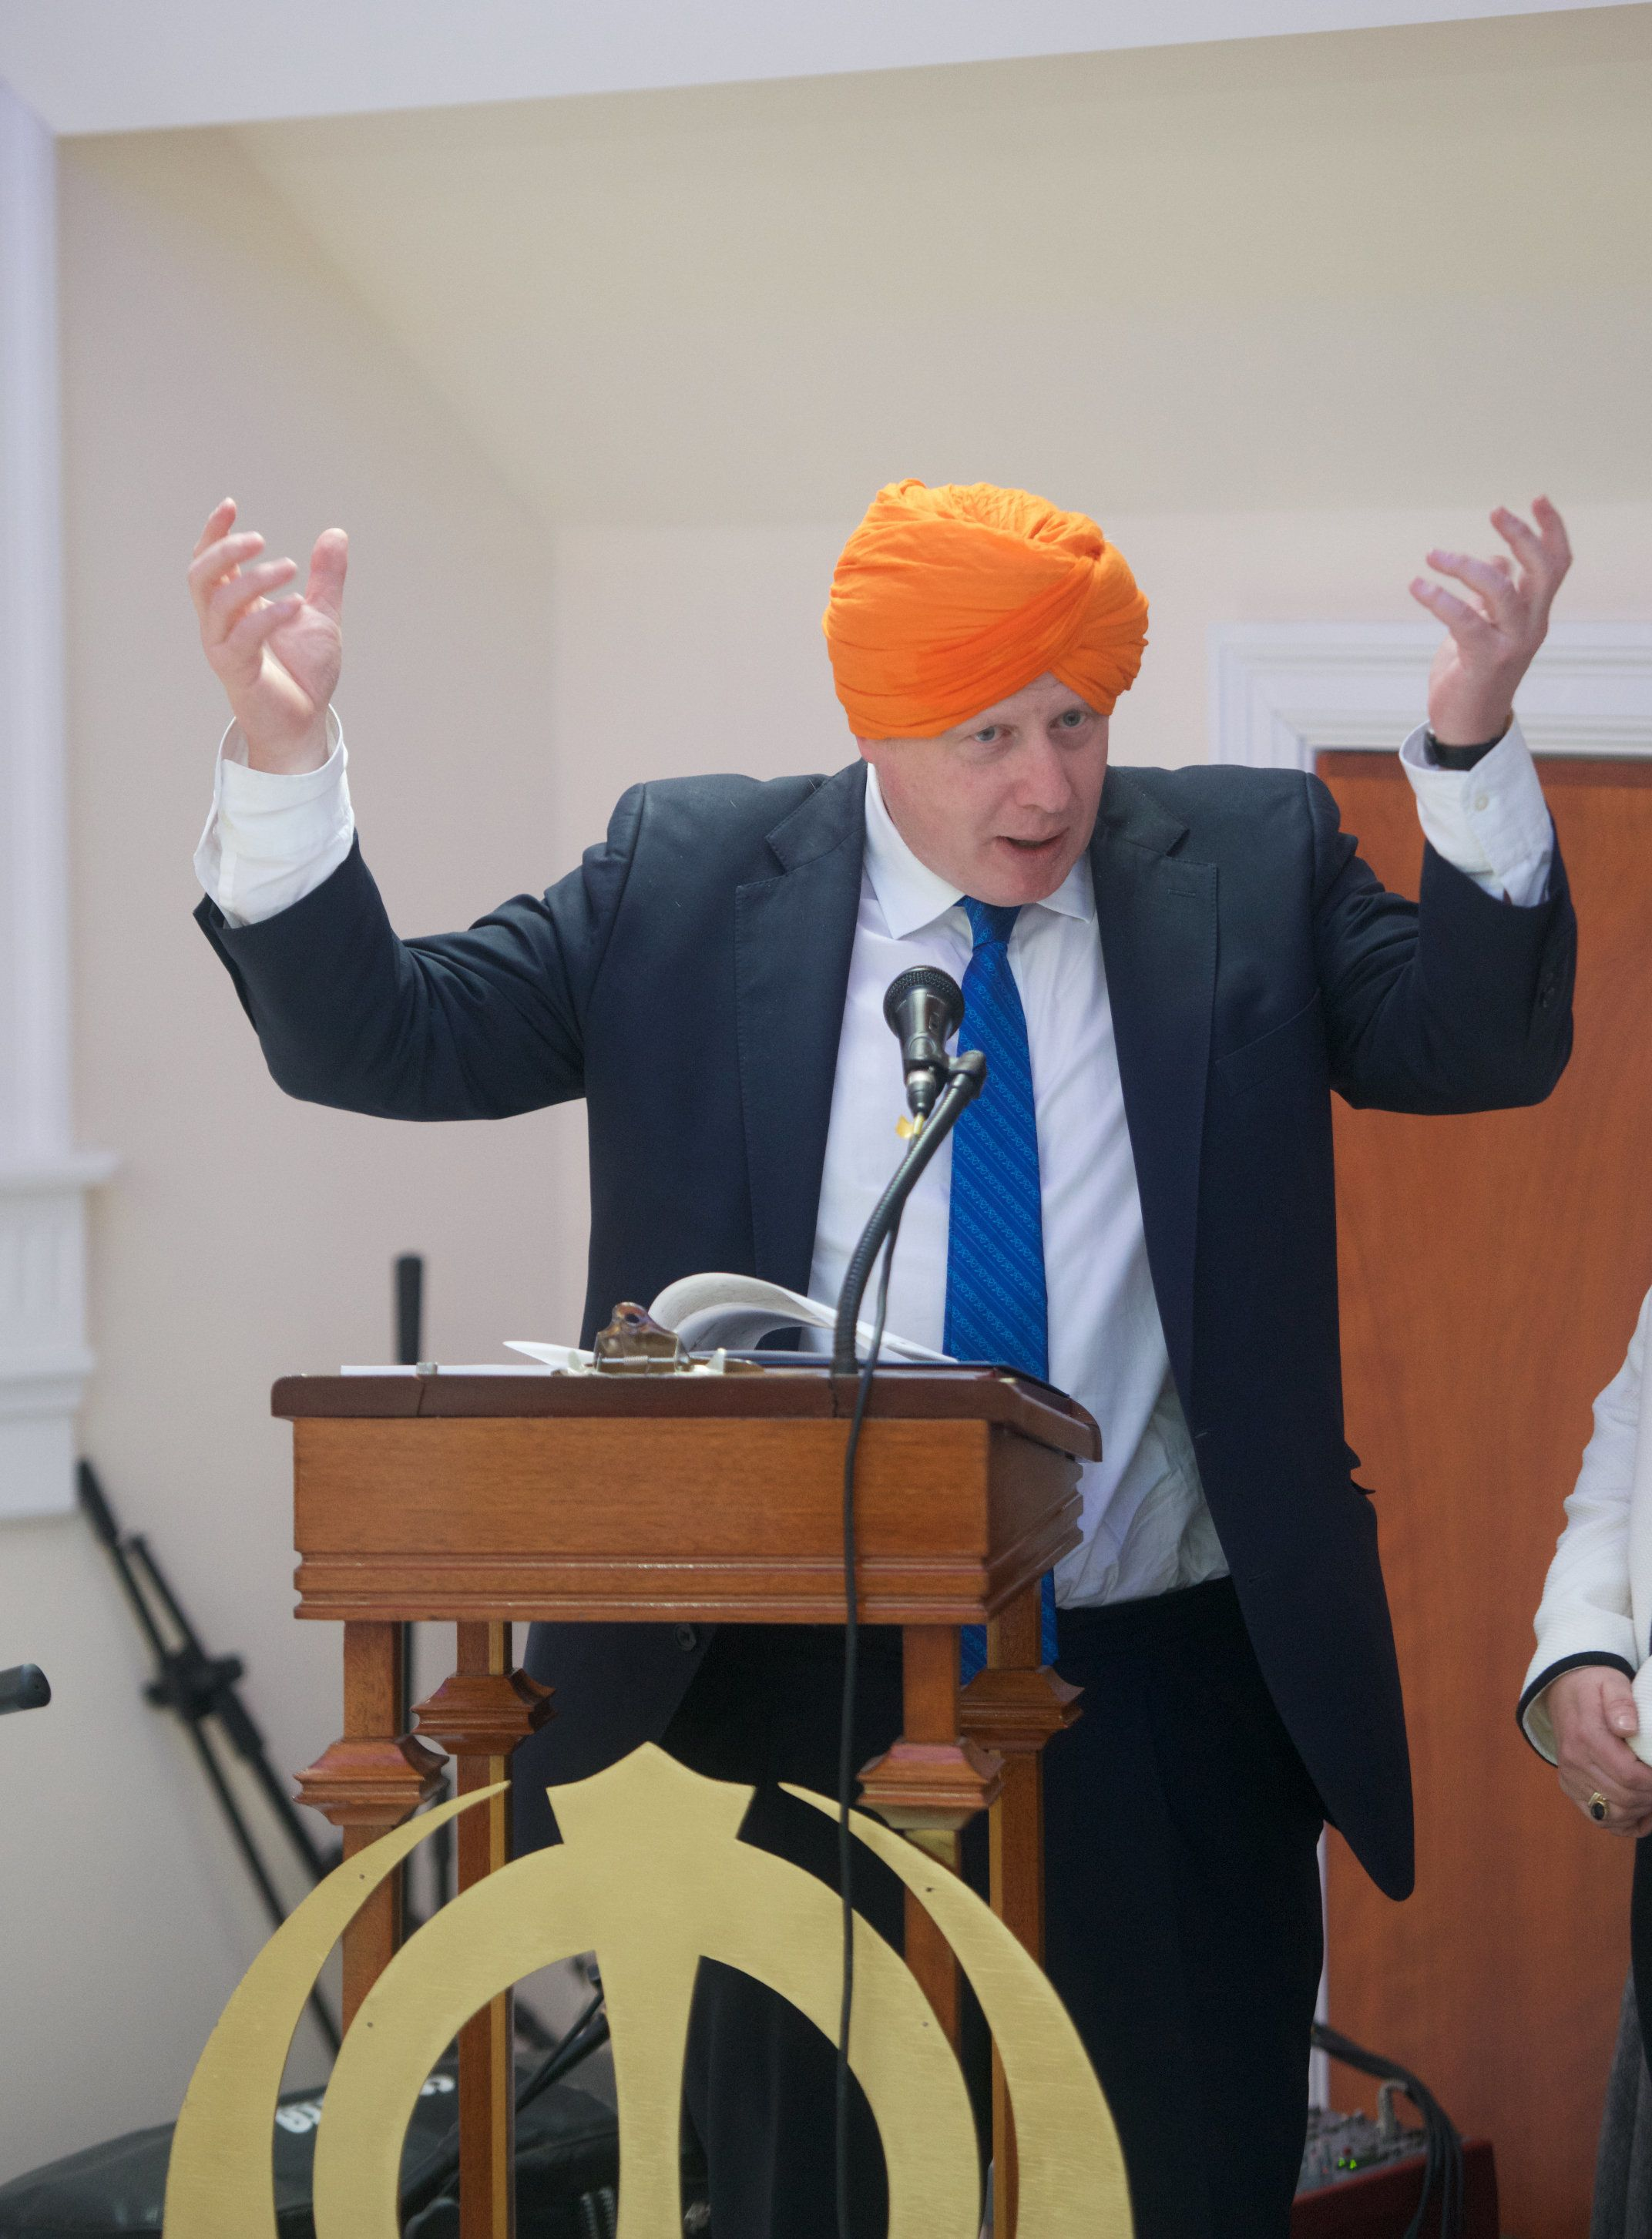 Boris Johnson caused controversy when he made a quipabout alcohol during a visit to a Sikh